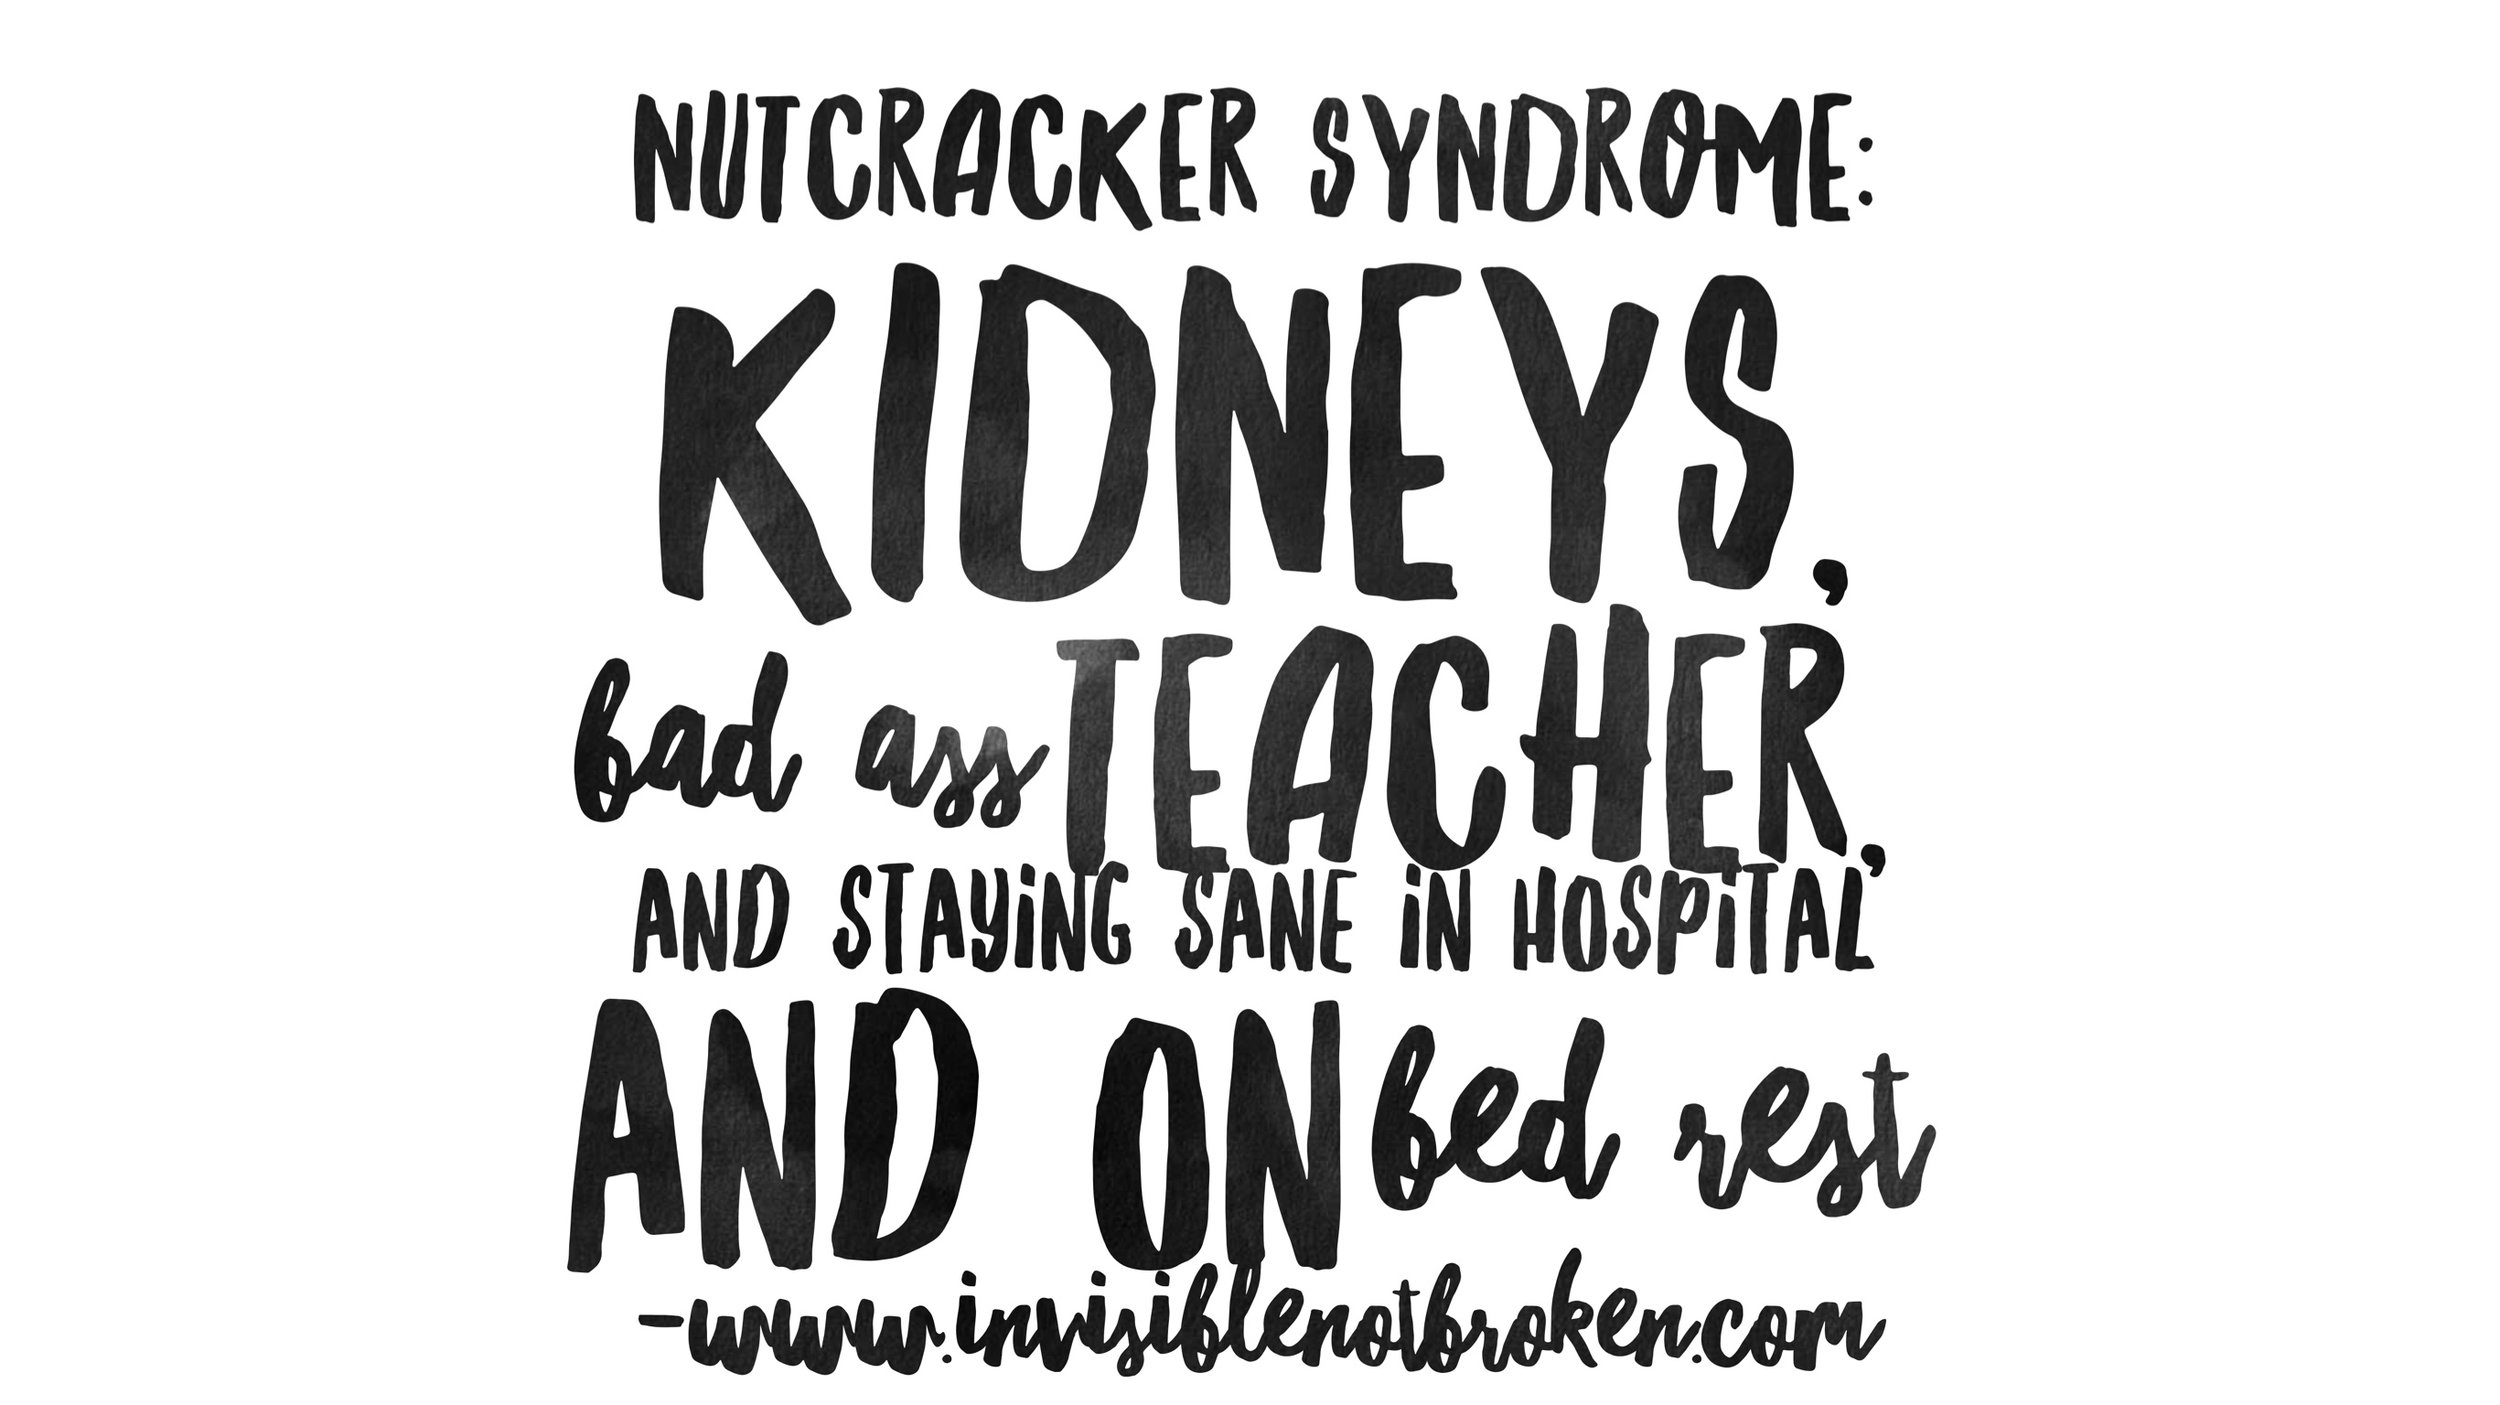 Nutcracker Syndrome: Kidneys, Bad Ass Teacher, and Staying Sane in Hospital and on Bed Rest